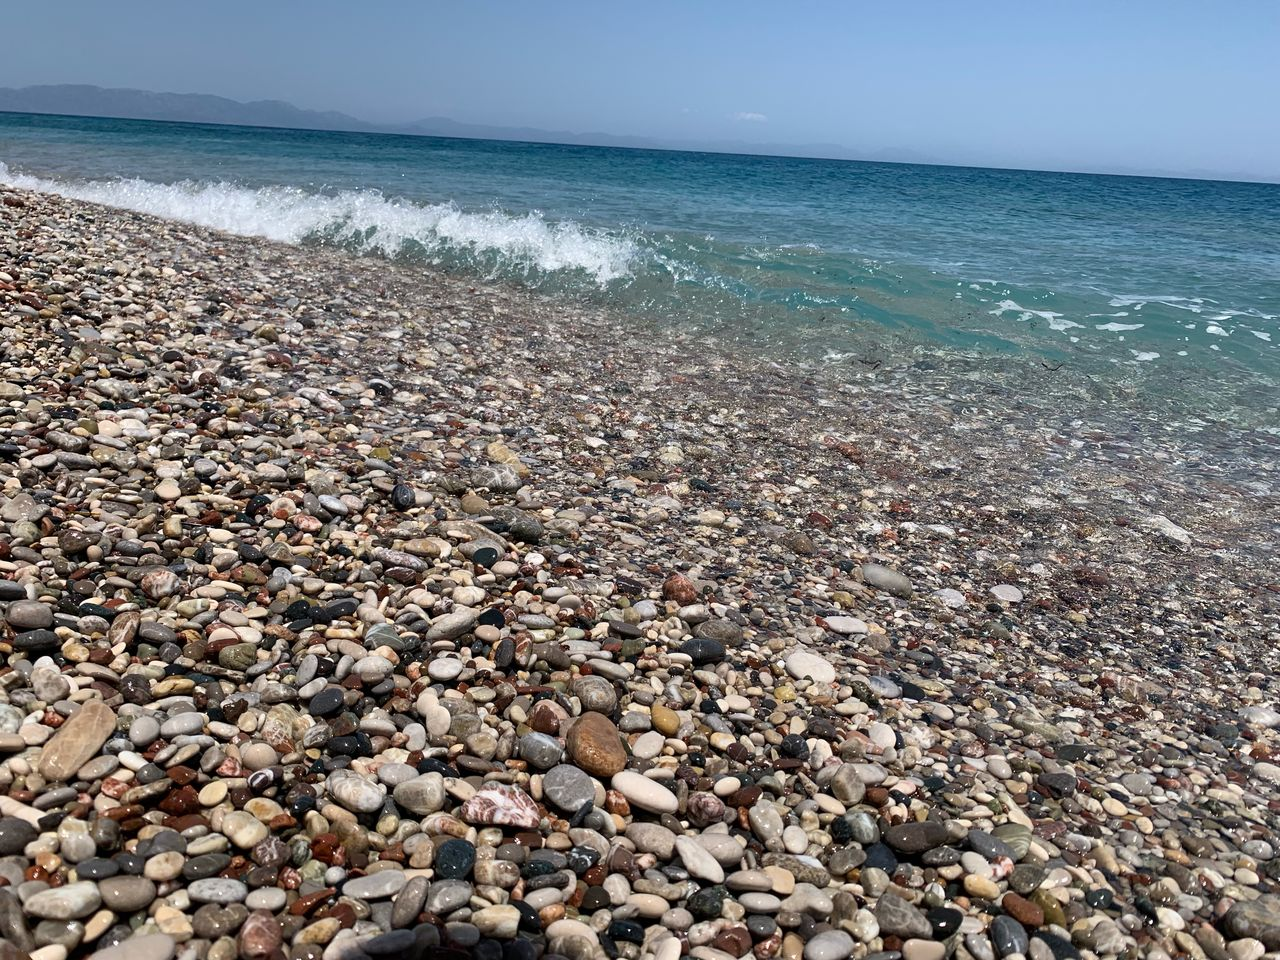 water, sea, beach, pebble, beauty in nature, stone, solid, rock, land, scenics - nature, horizon over water, horizon, nature, stone - object, tranquil scene, tranquility, sky, day, no people, outdoors, shallow